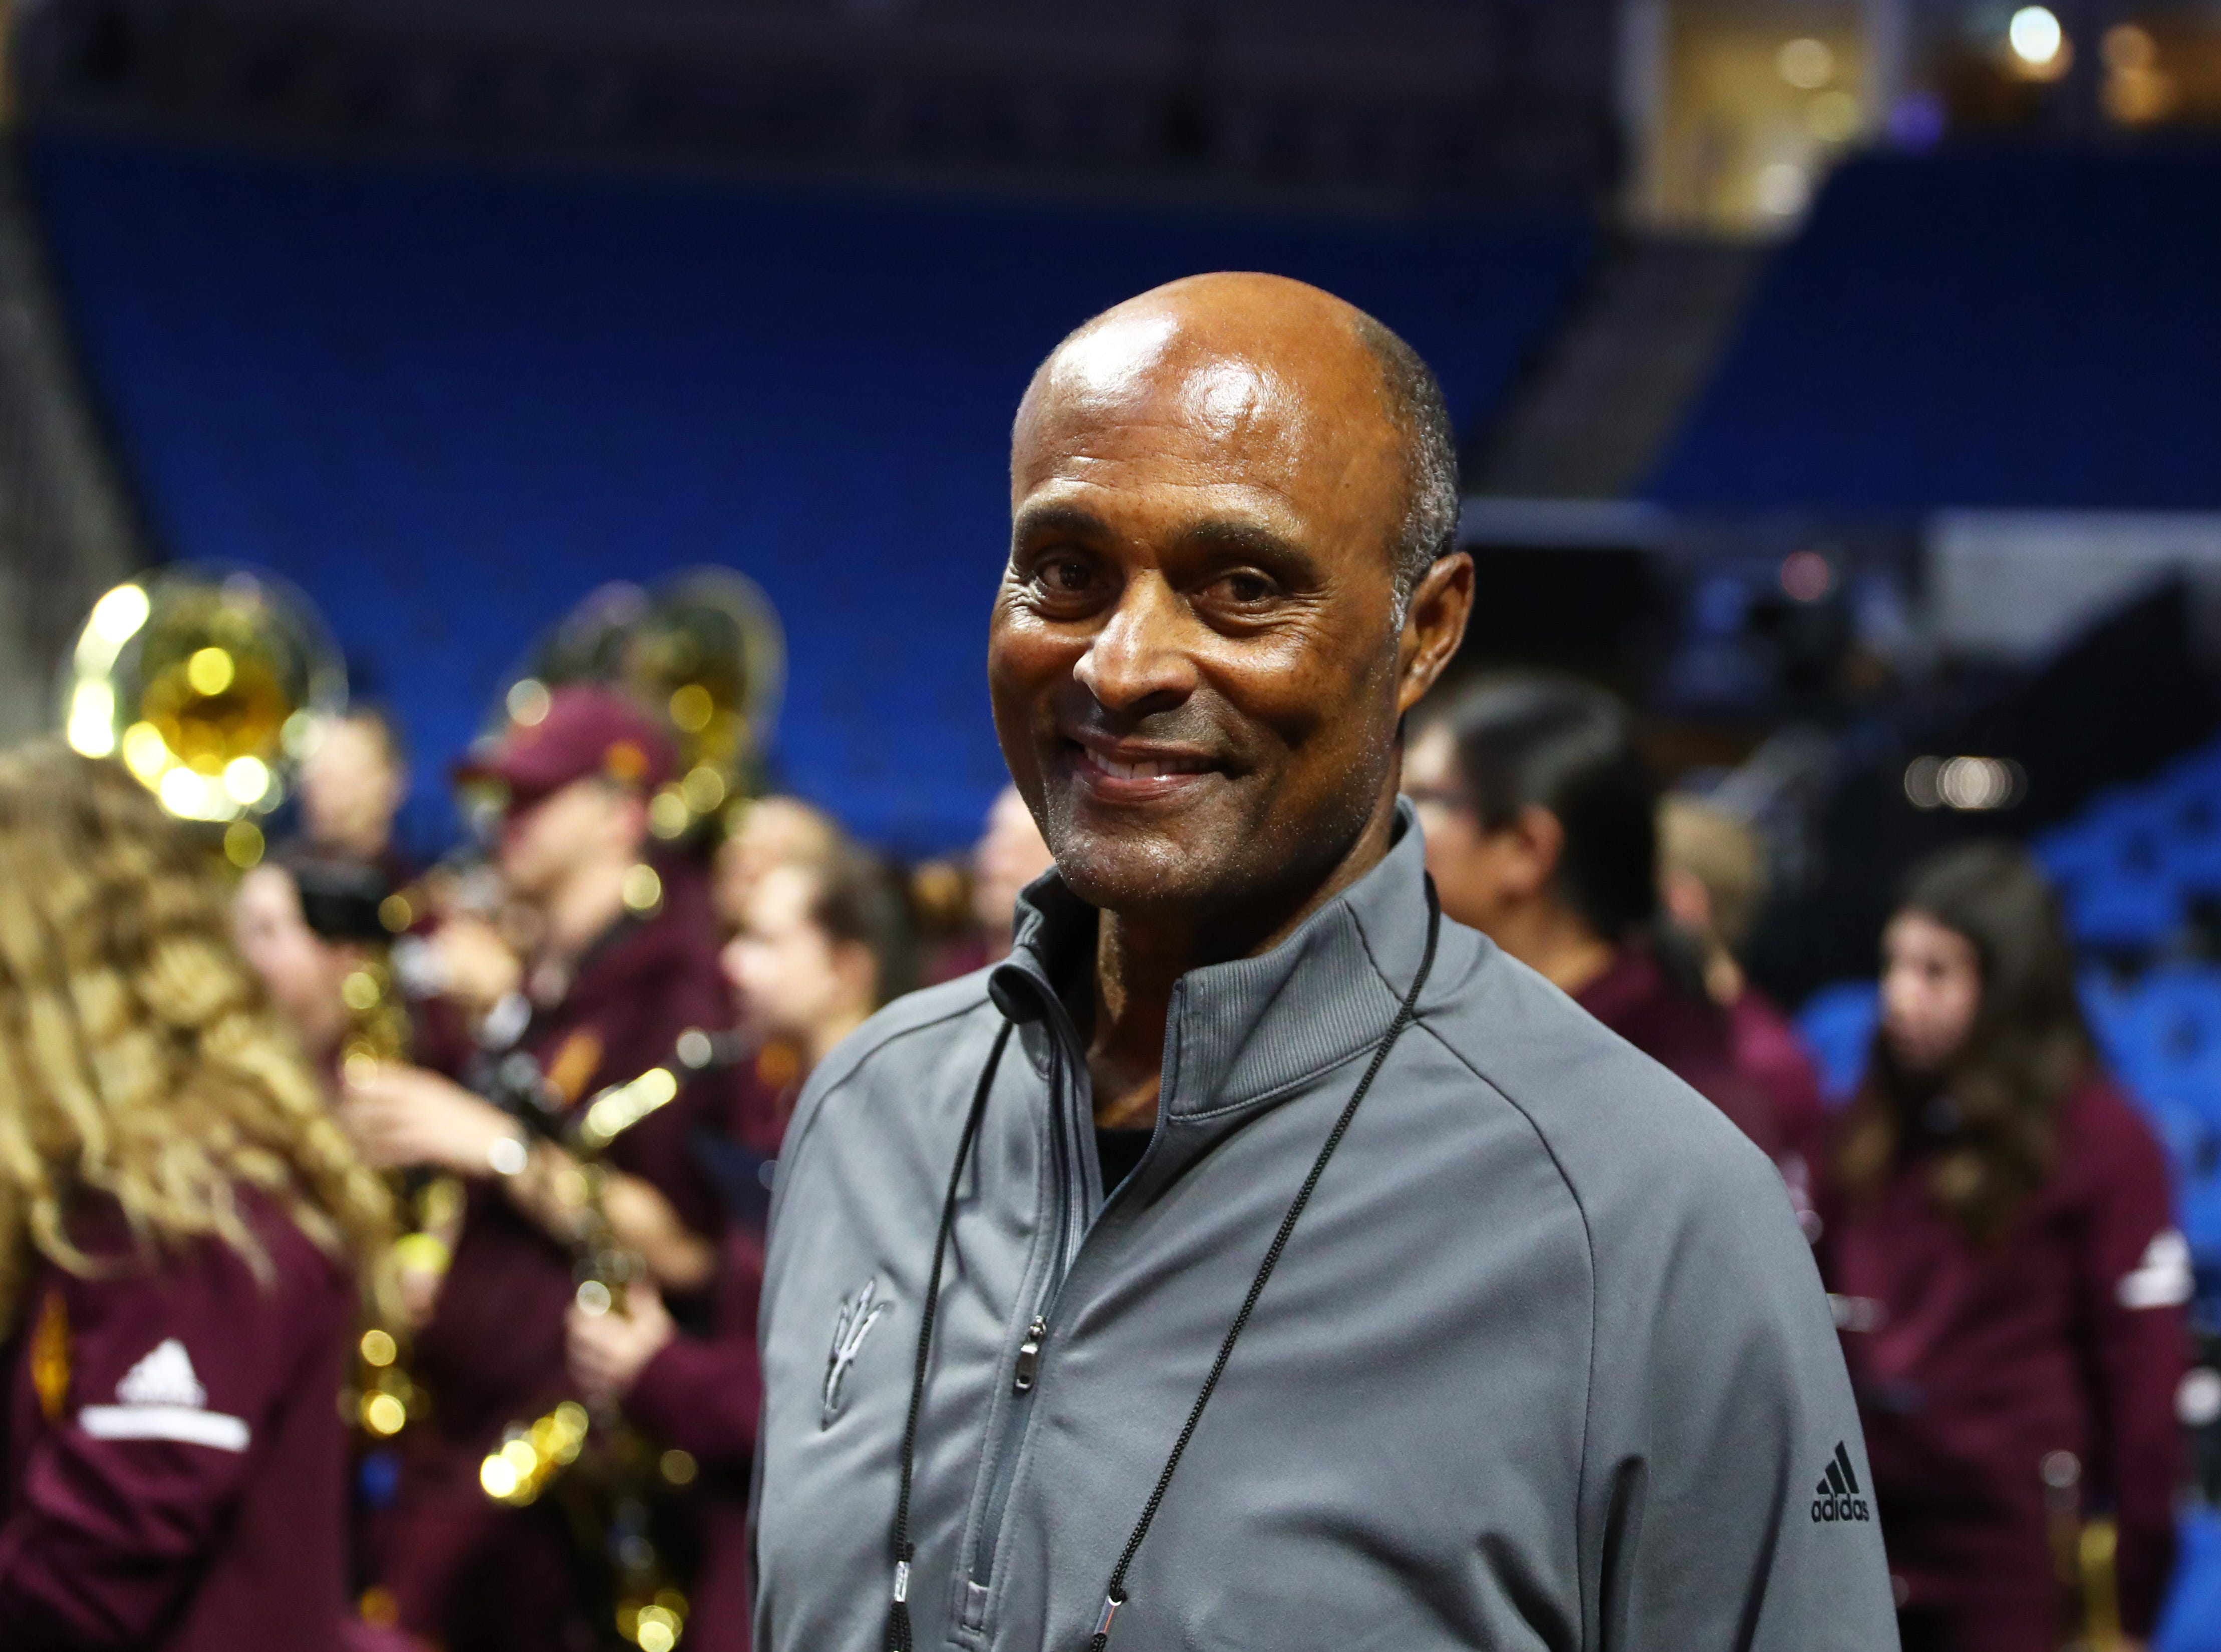 Mar 21, 2019; Tulsa, OK, USA; Arizona State Sun Devils athletic director Ray Anderson during practice before the first round of the 2019 NCAA Tournament at BOK Center. Mandatory Credit: Mark J. Rebilas-USA TODAY Sports